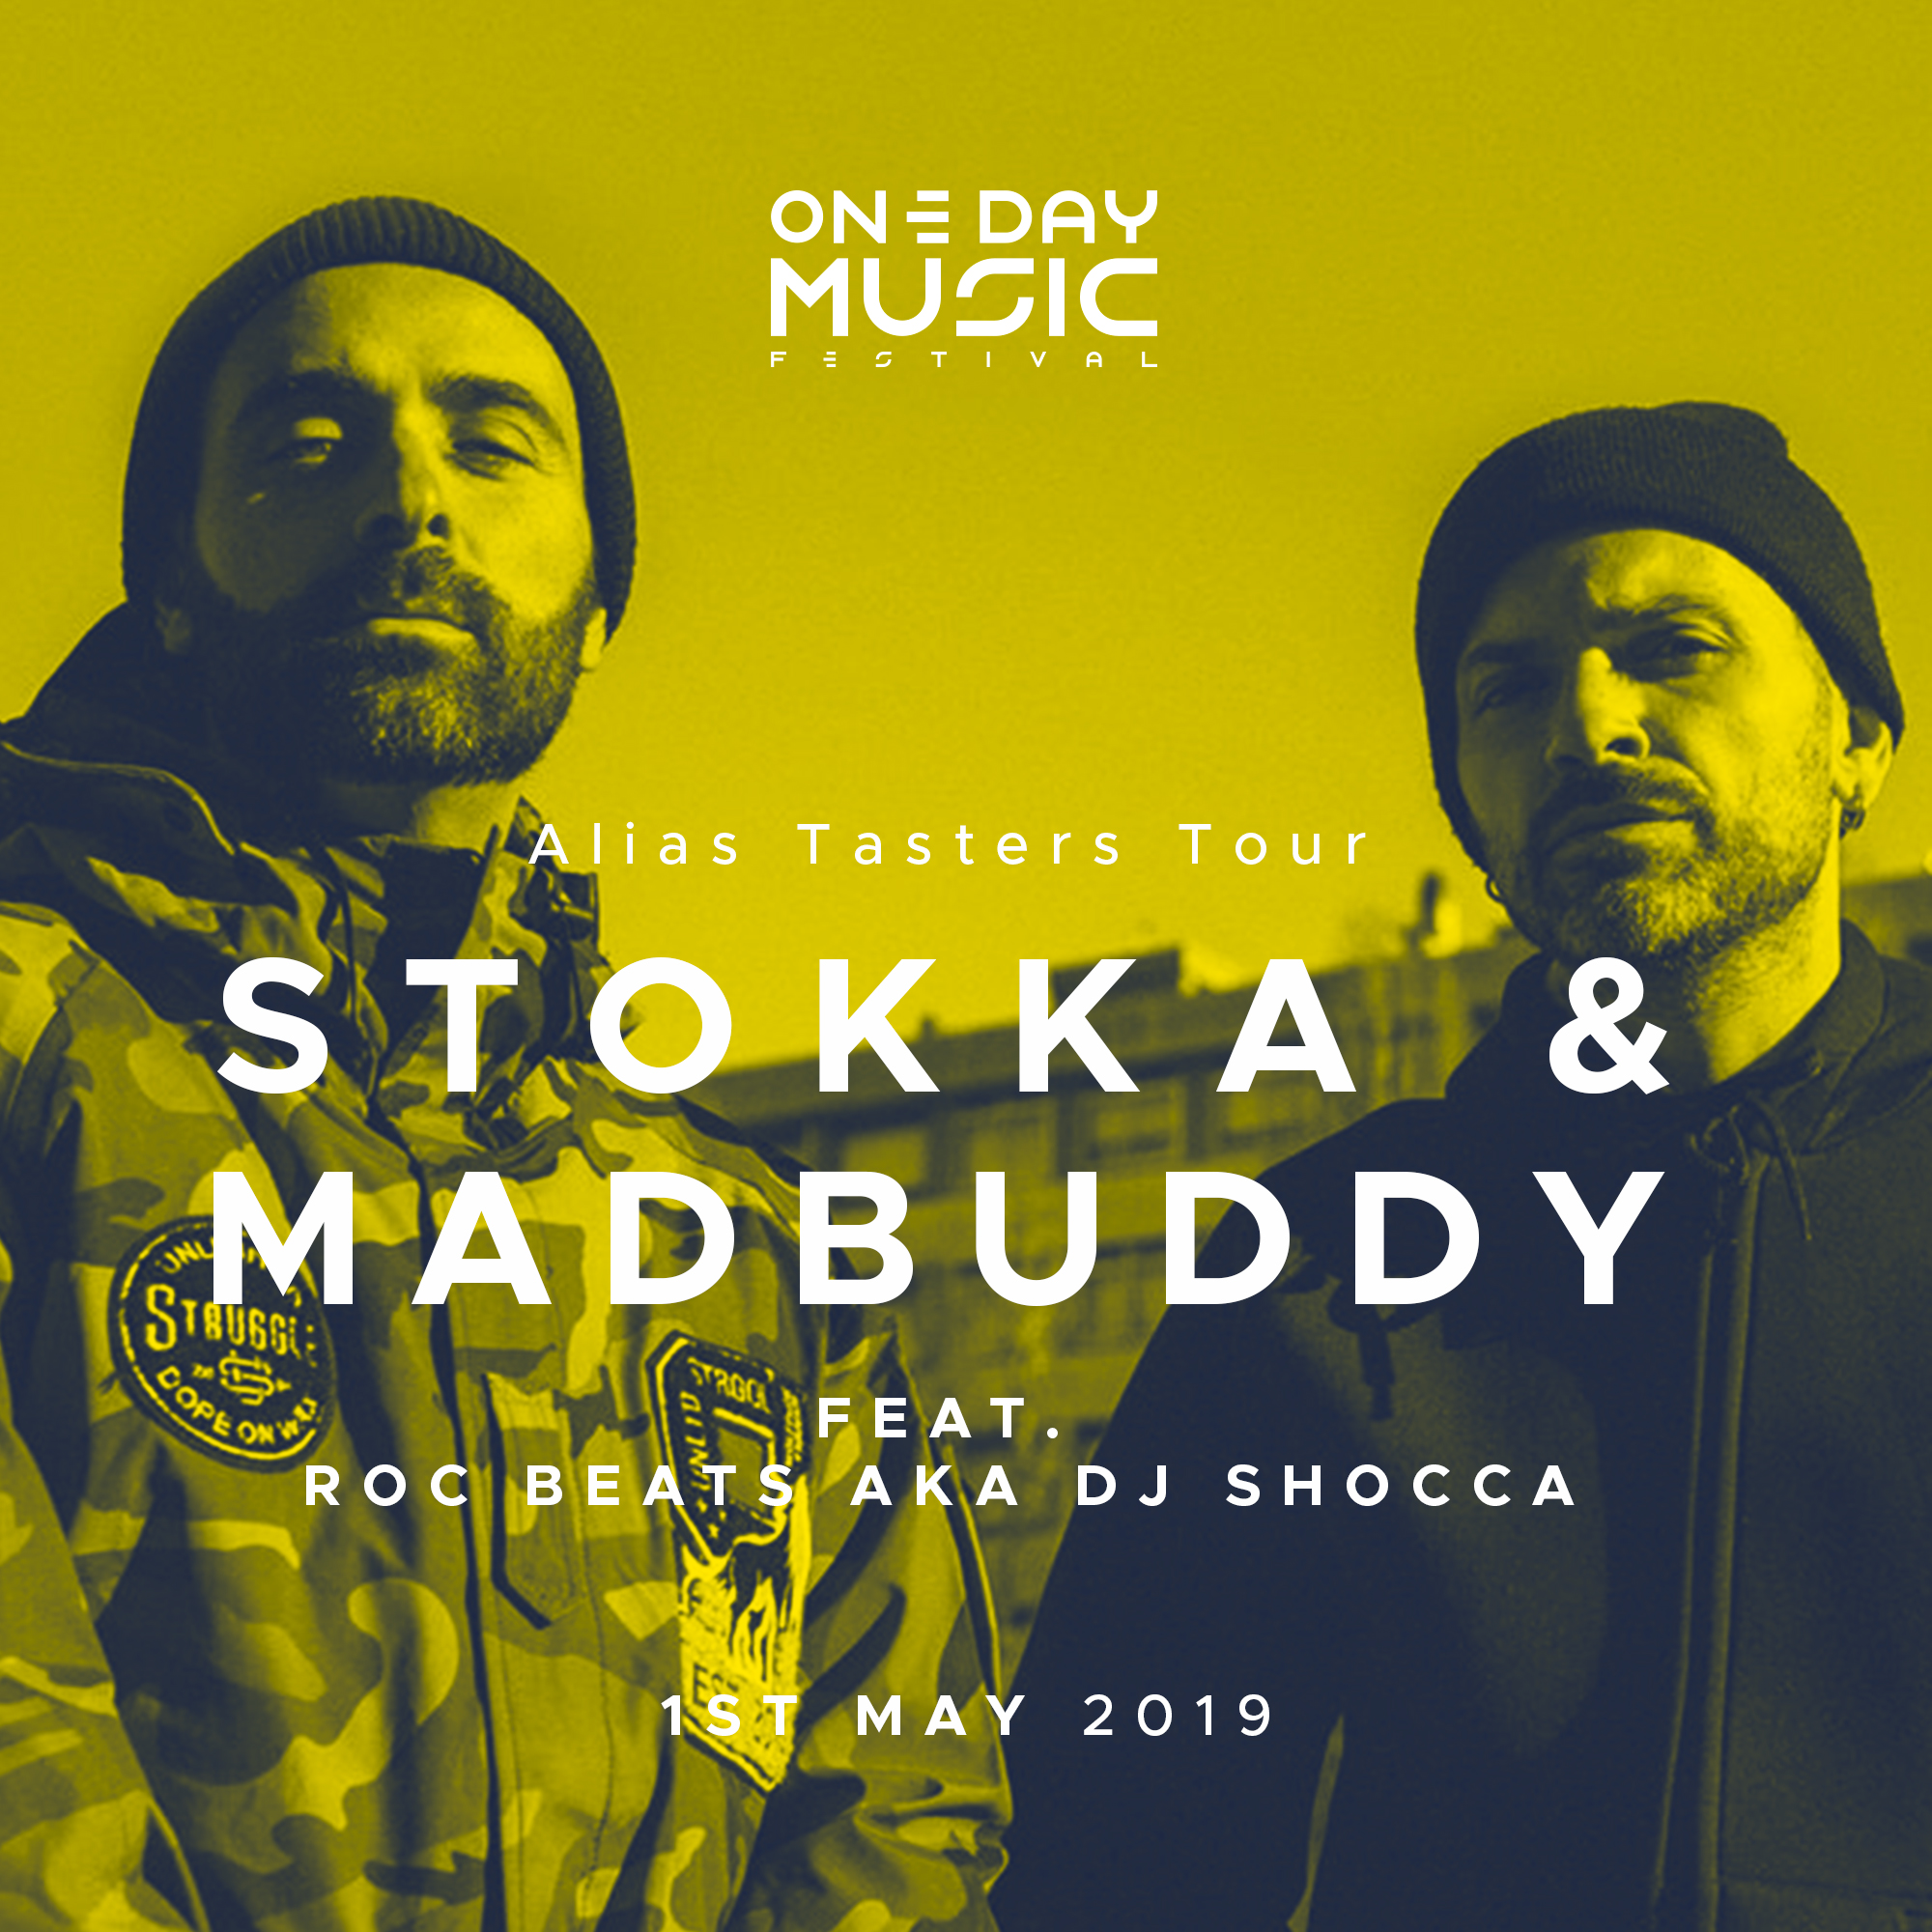 Stokka and Madbuddy